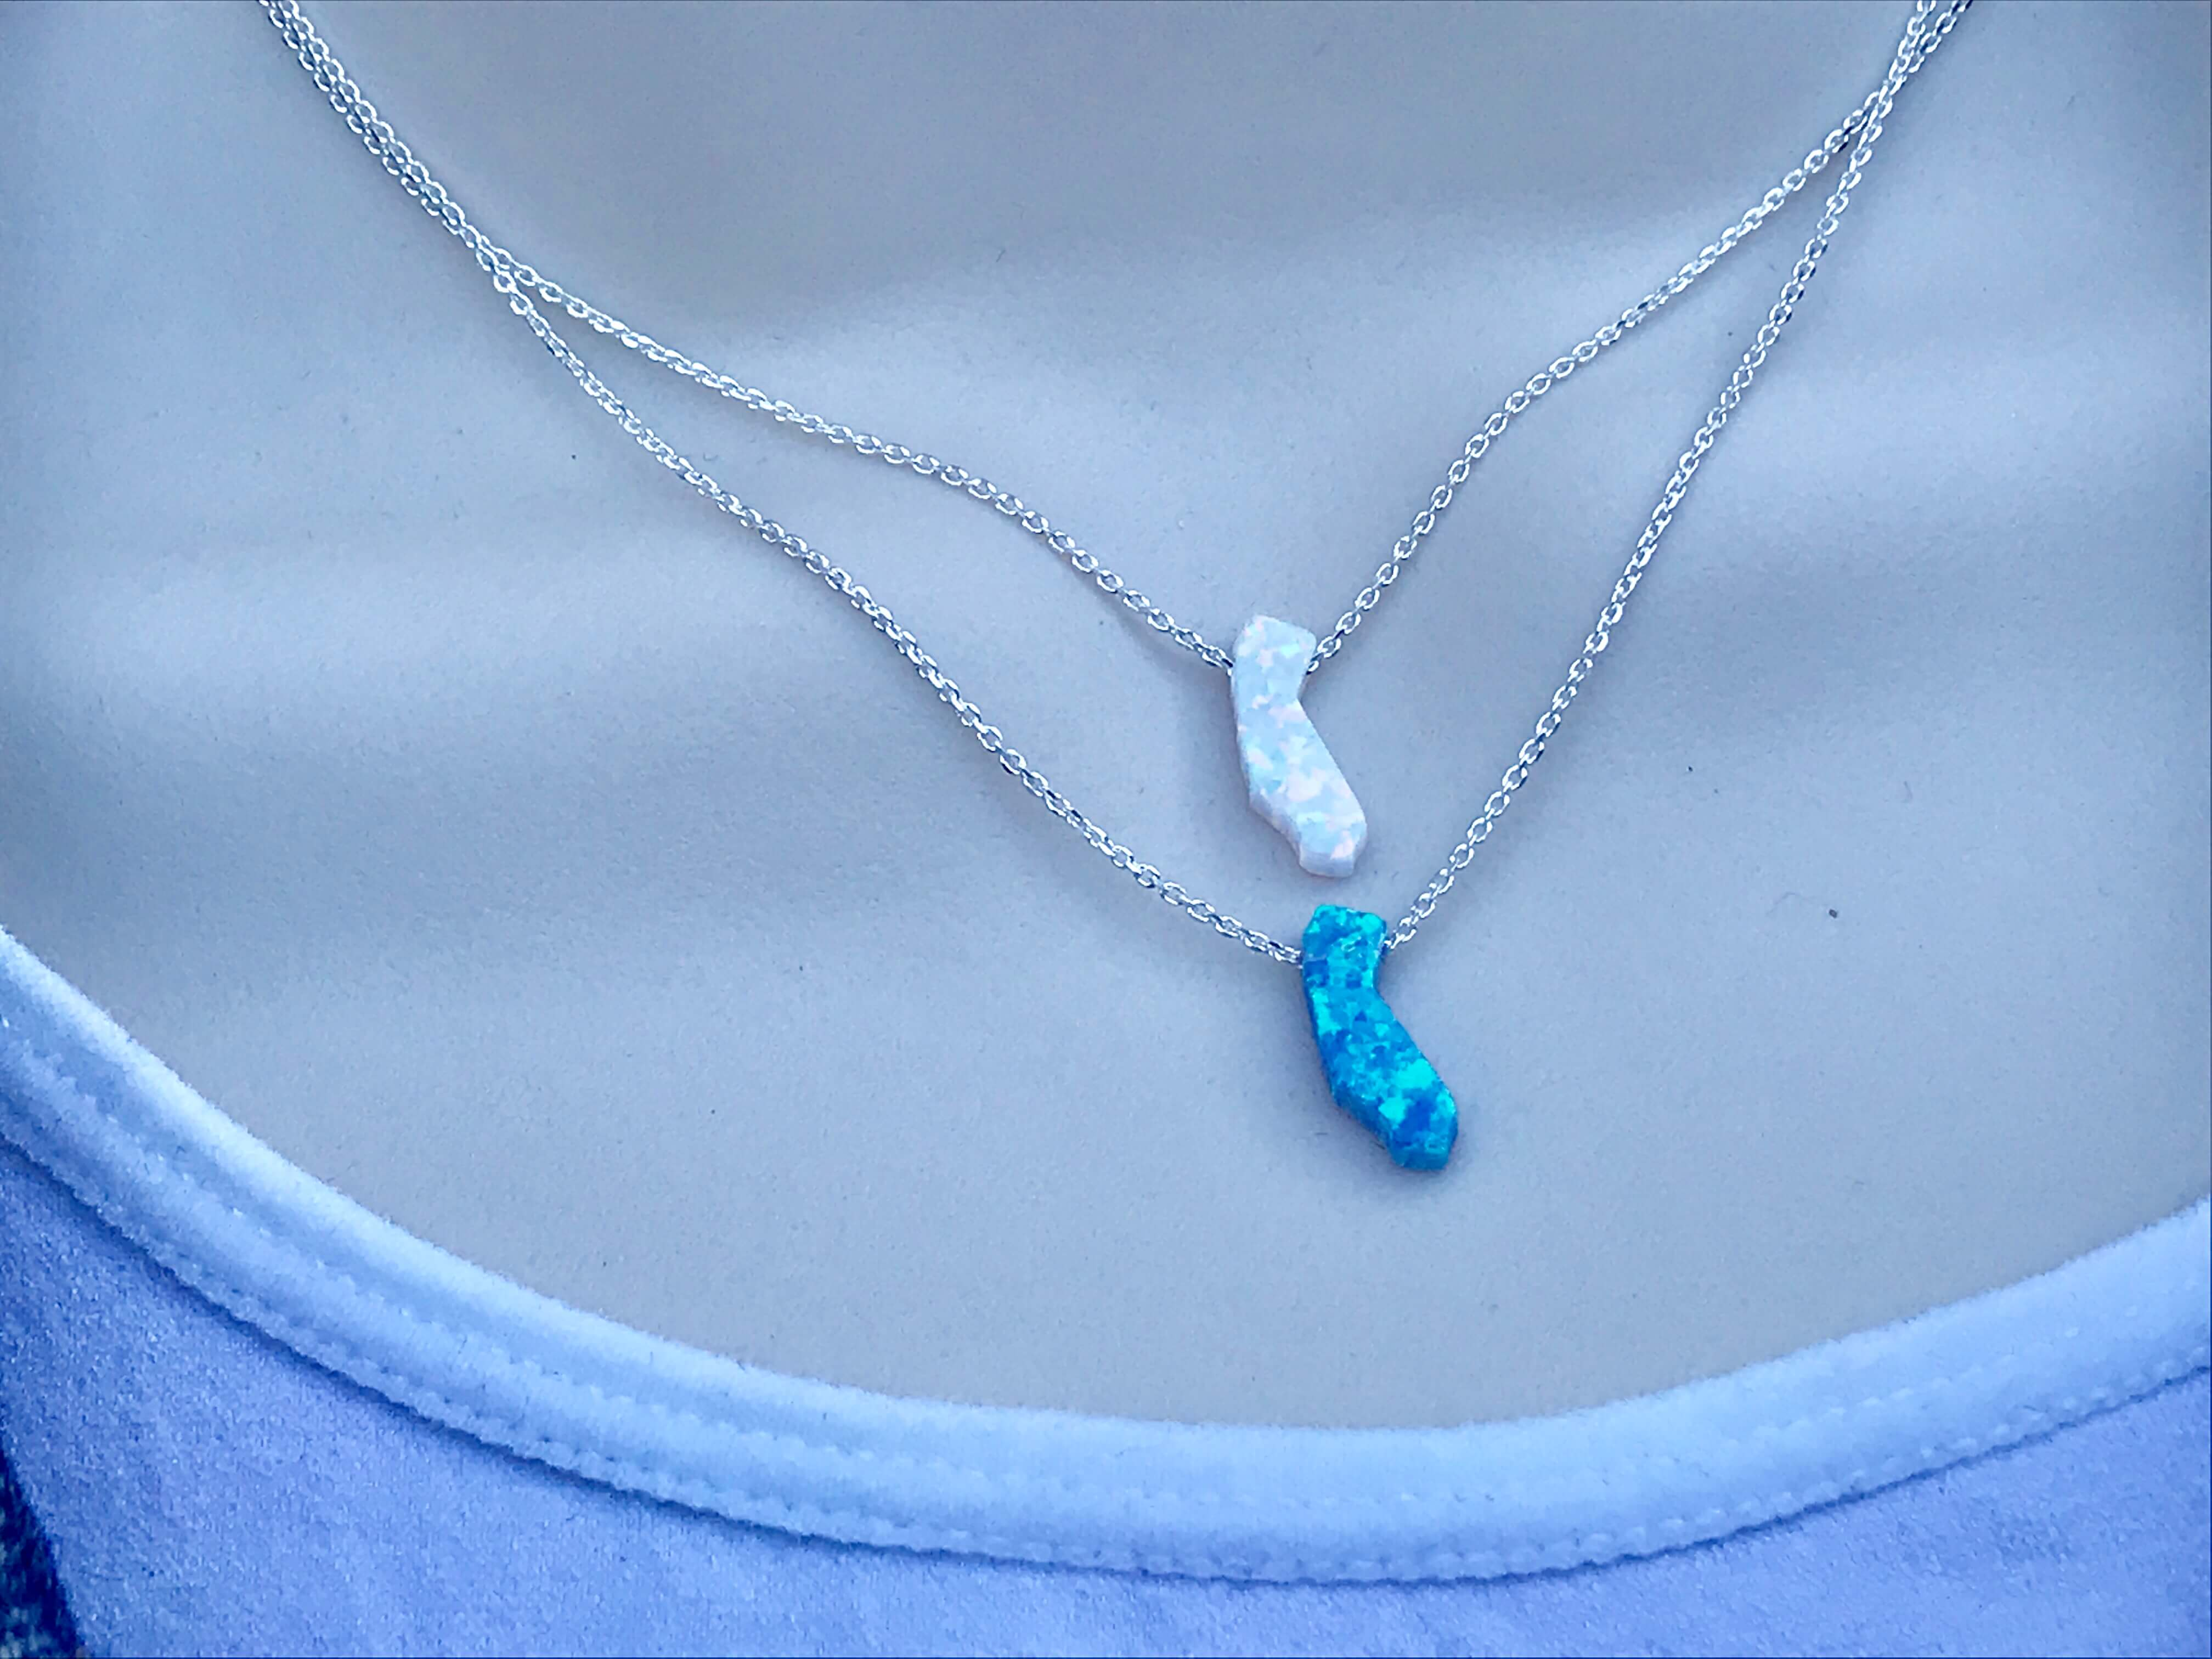 California Sterling Silver Necklace - Your Choice of Length & Color